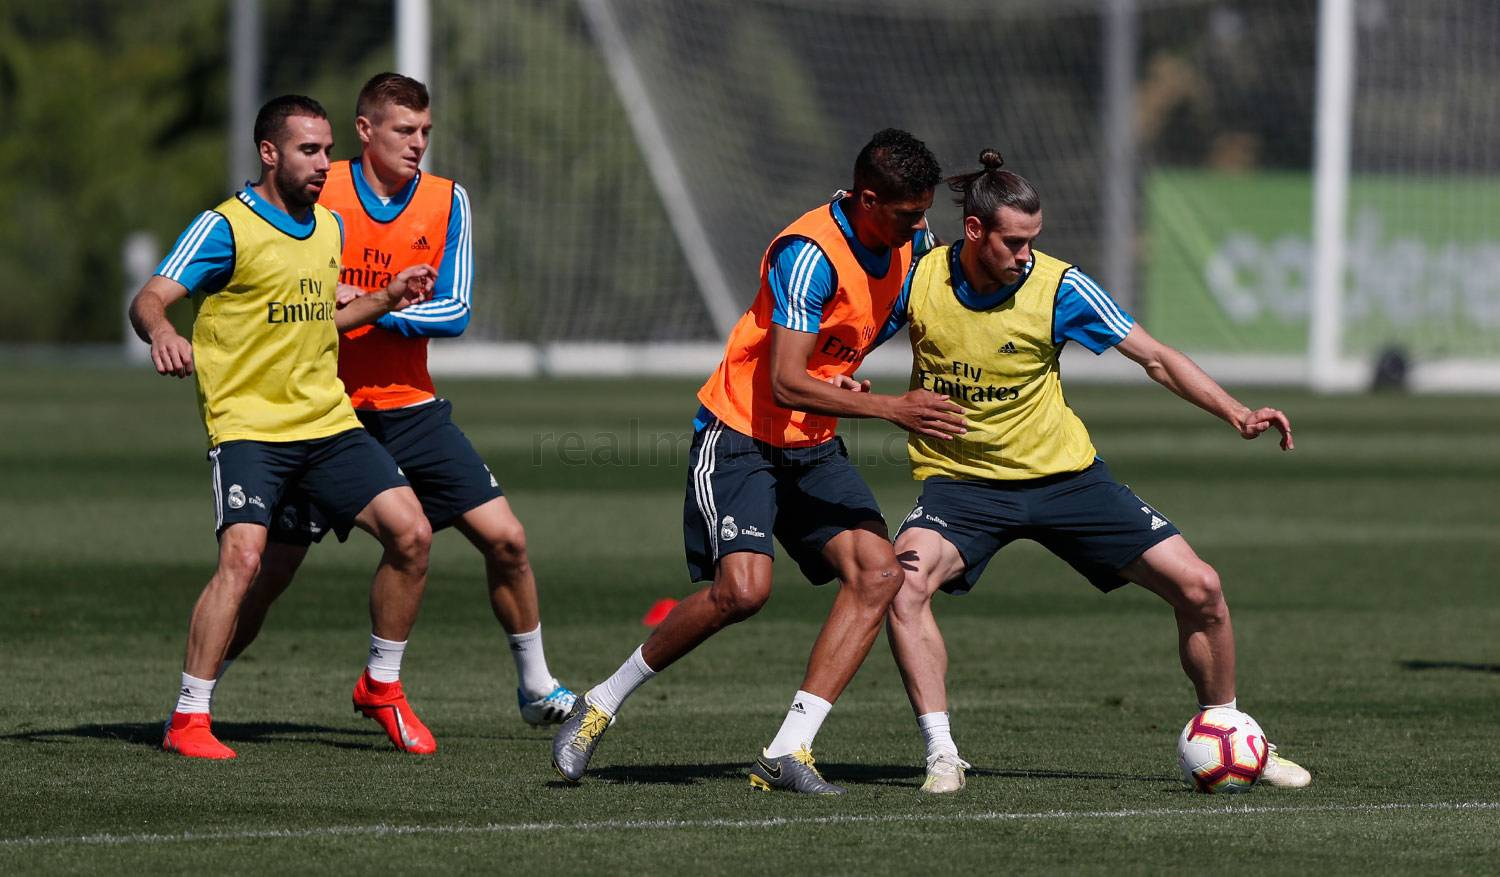 Real Madrid - Entrenamiento del Real Madrid - 03-05-2019